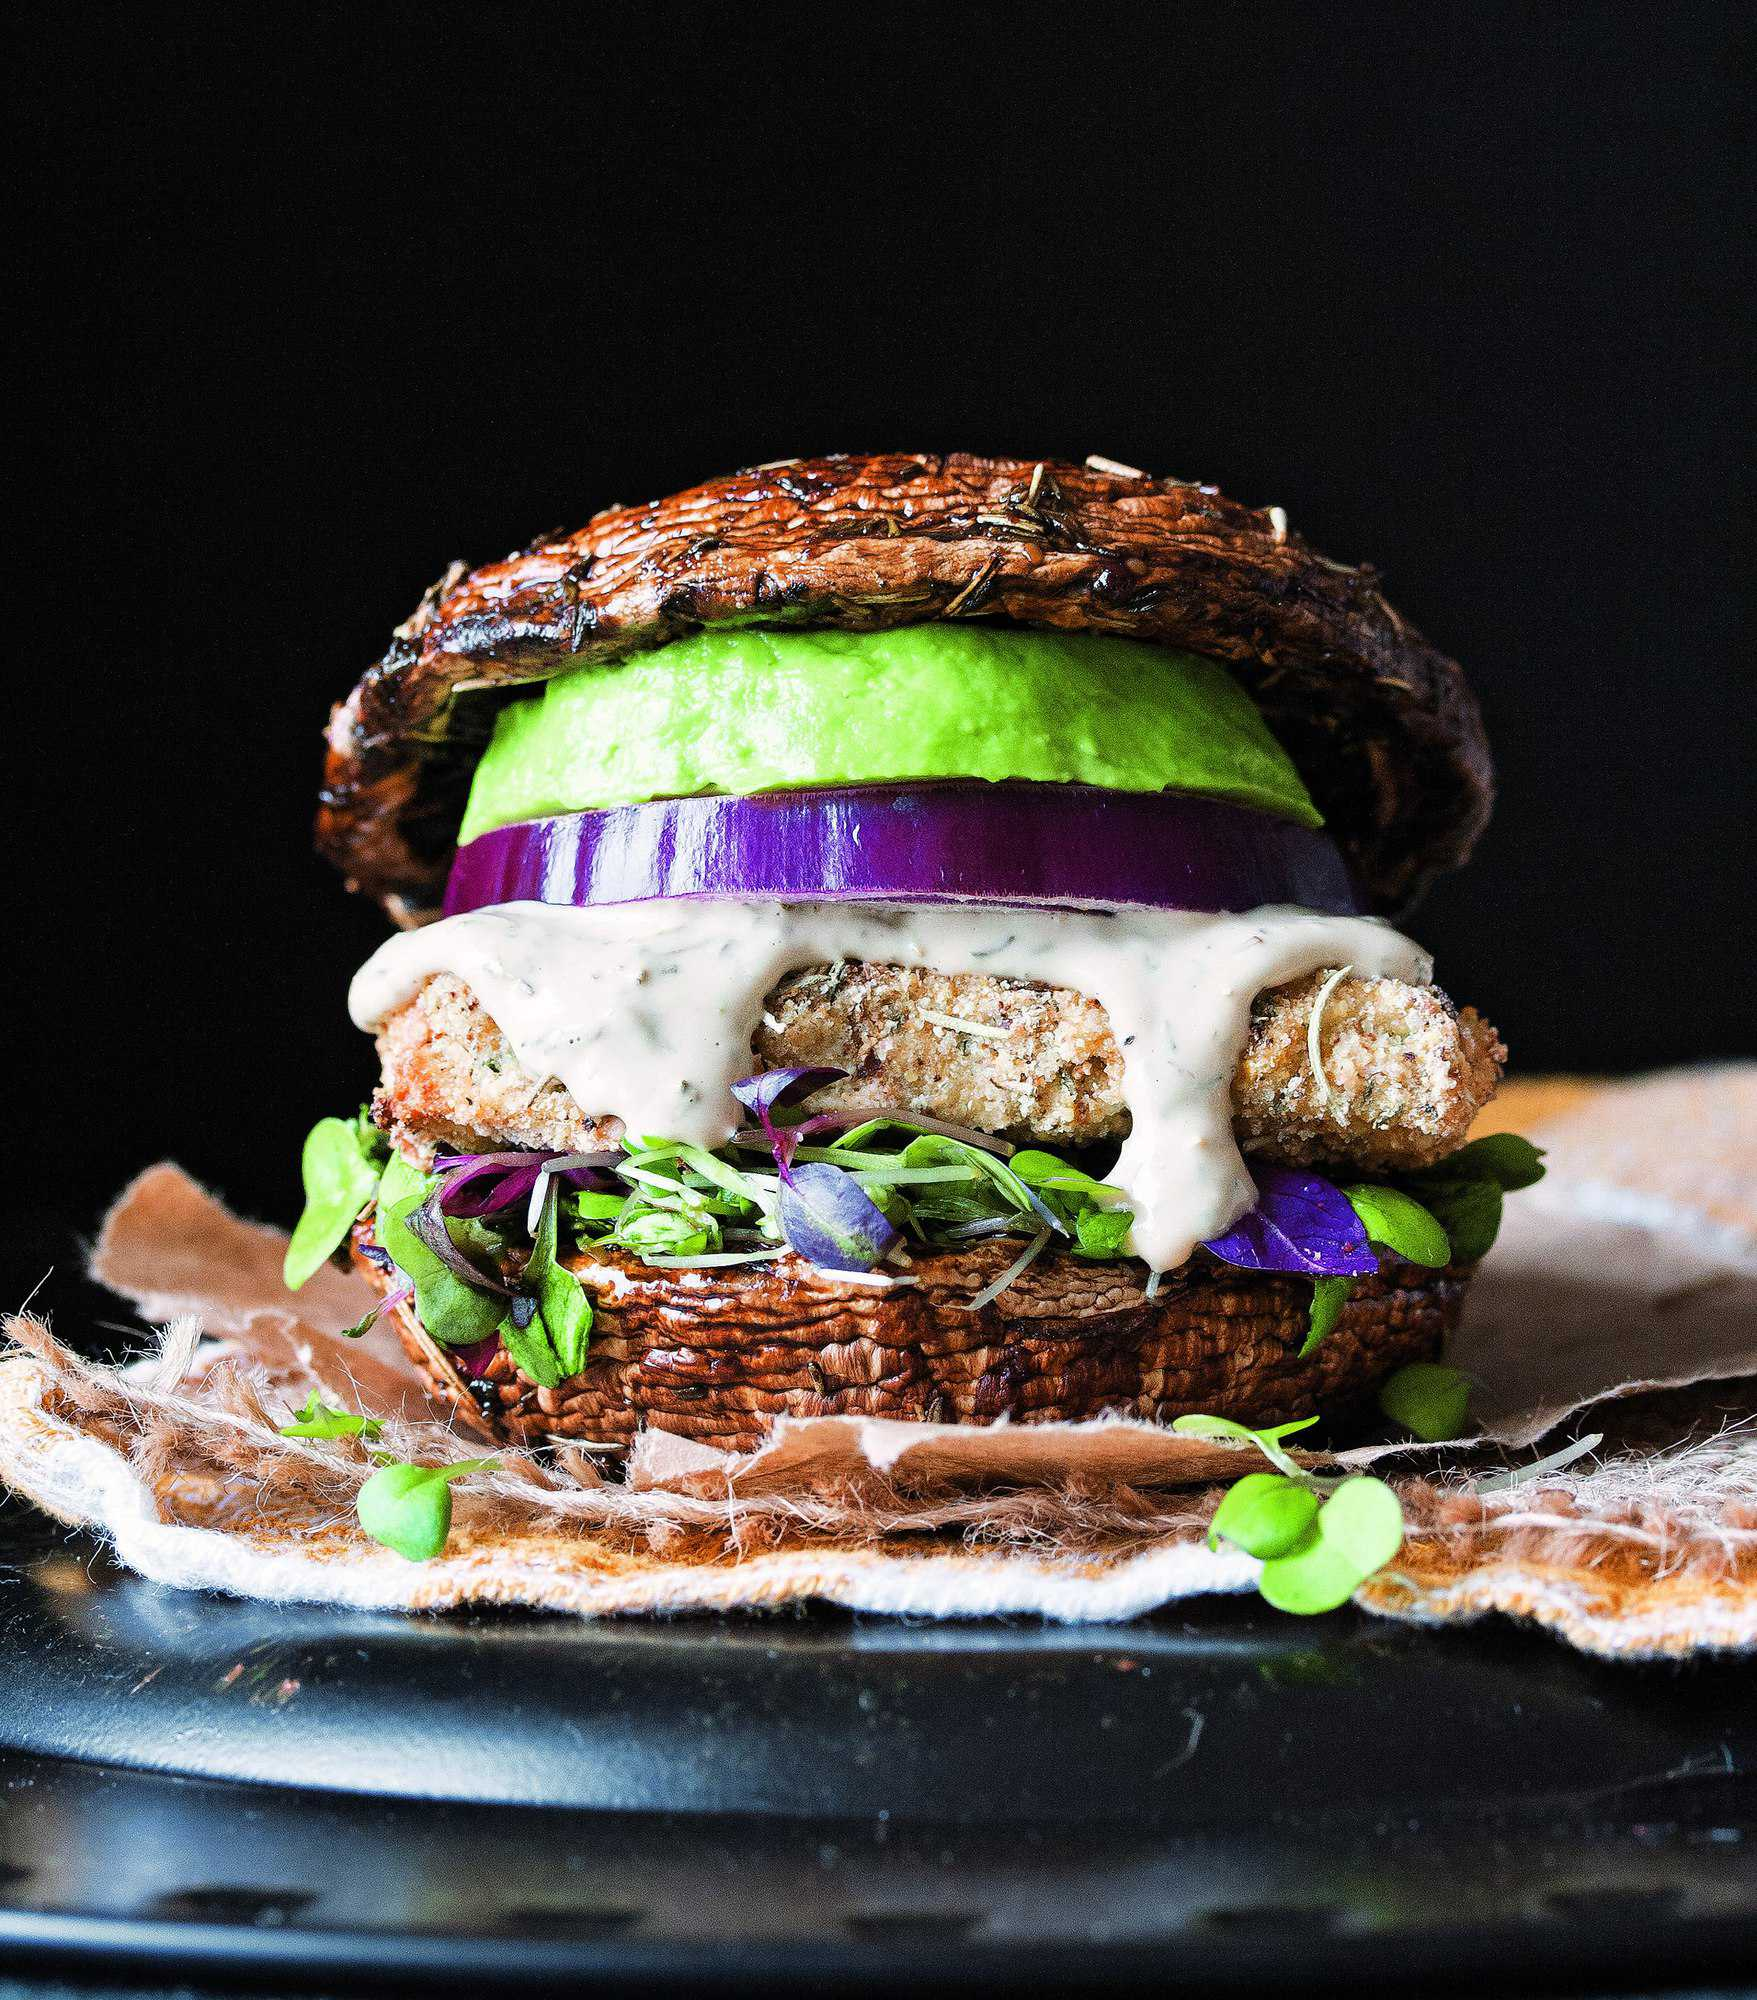 Vegan Portobello Mushroom Burger Gluten Free The Blender Girl